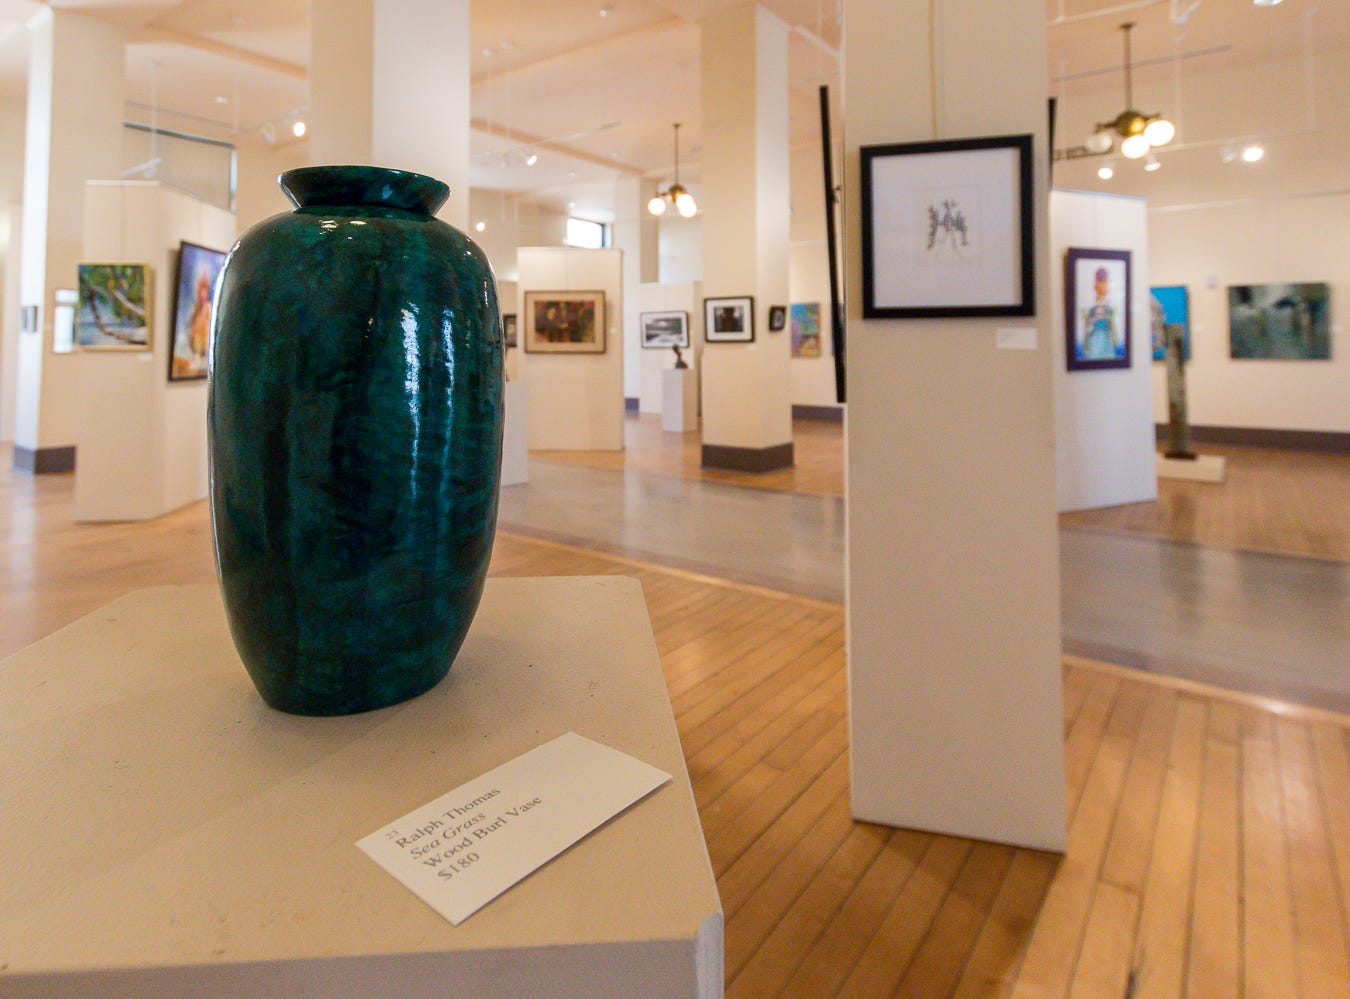 """Sea Grass,"" a wood burl vase by Lukas Mikurda, is one of over 100 pieces on display as part of the ""Cinco Banderas Collection"" at the Artel Gallery on Tuesday, October 30, 2018. The exhibit, which runs through November 30, is celebrating its 30th anniversary this year."